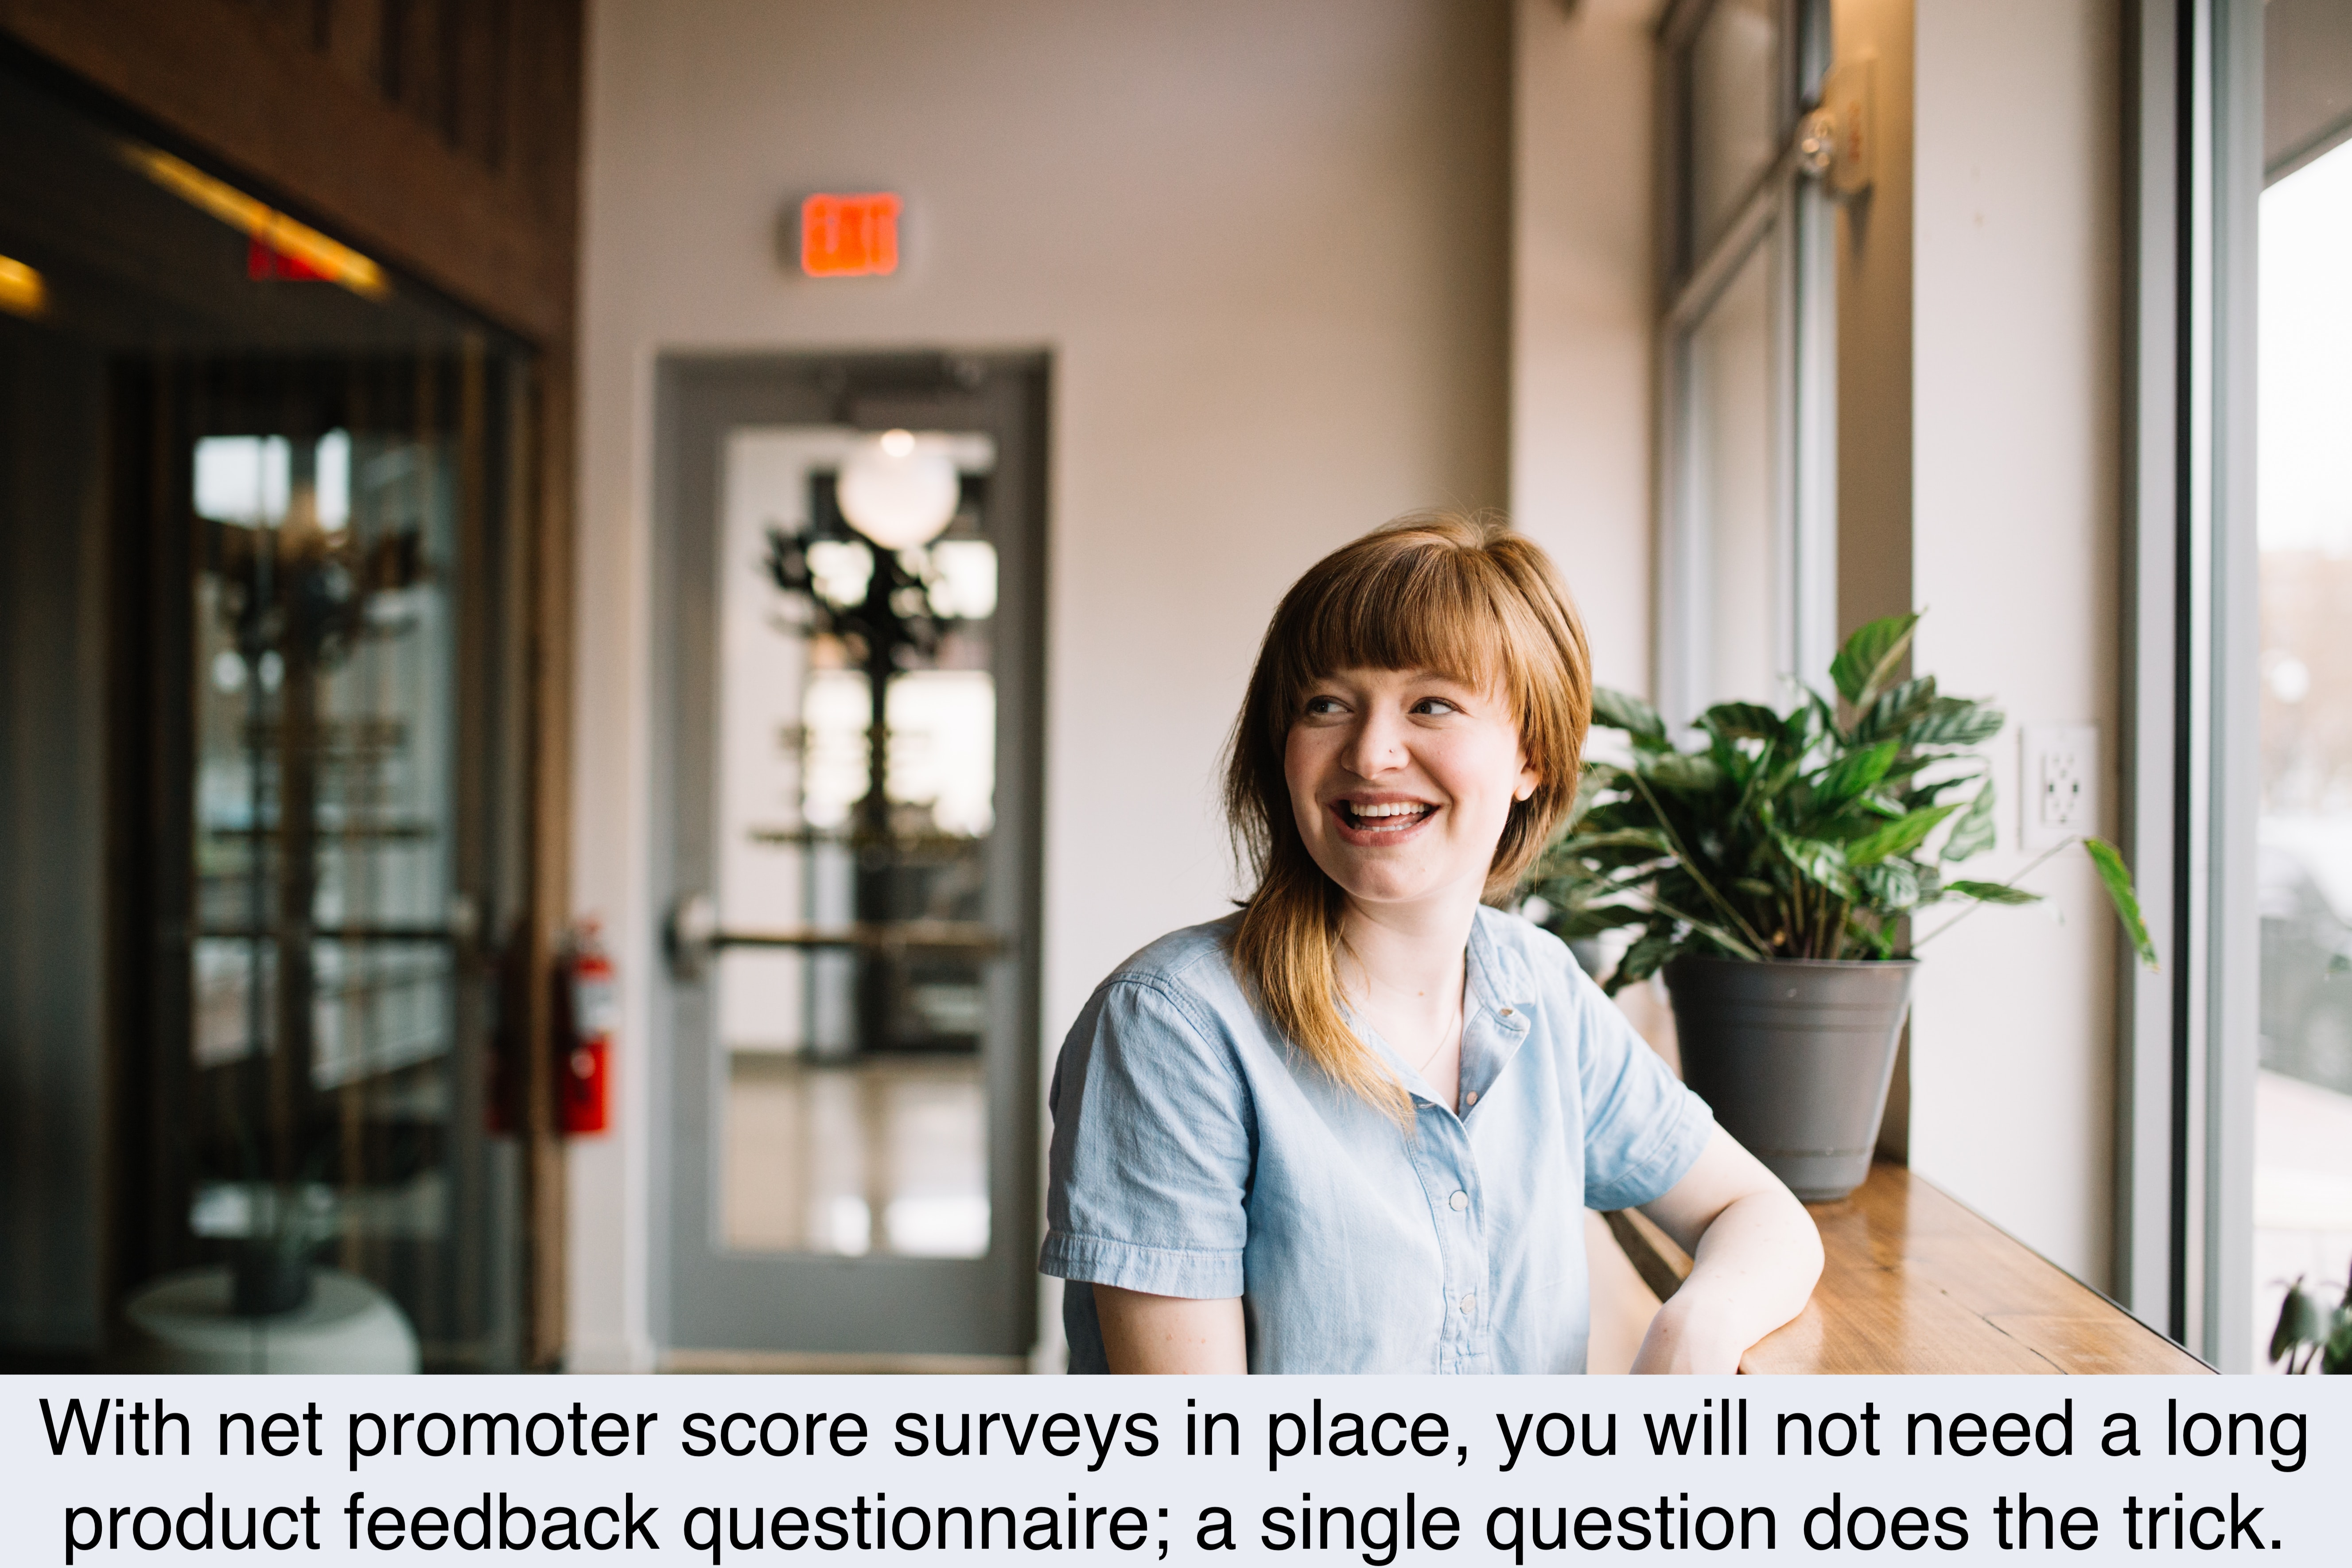 With net promoter score surveys in place, you will not need a long product feedback questionnaire; a single question does the trick.